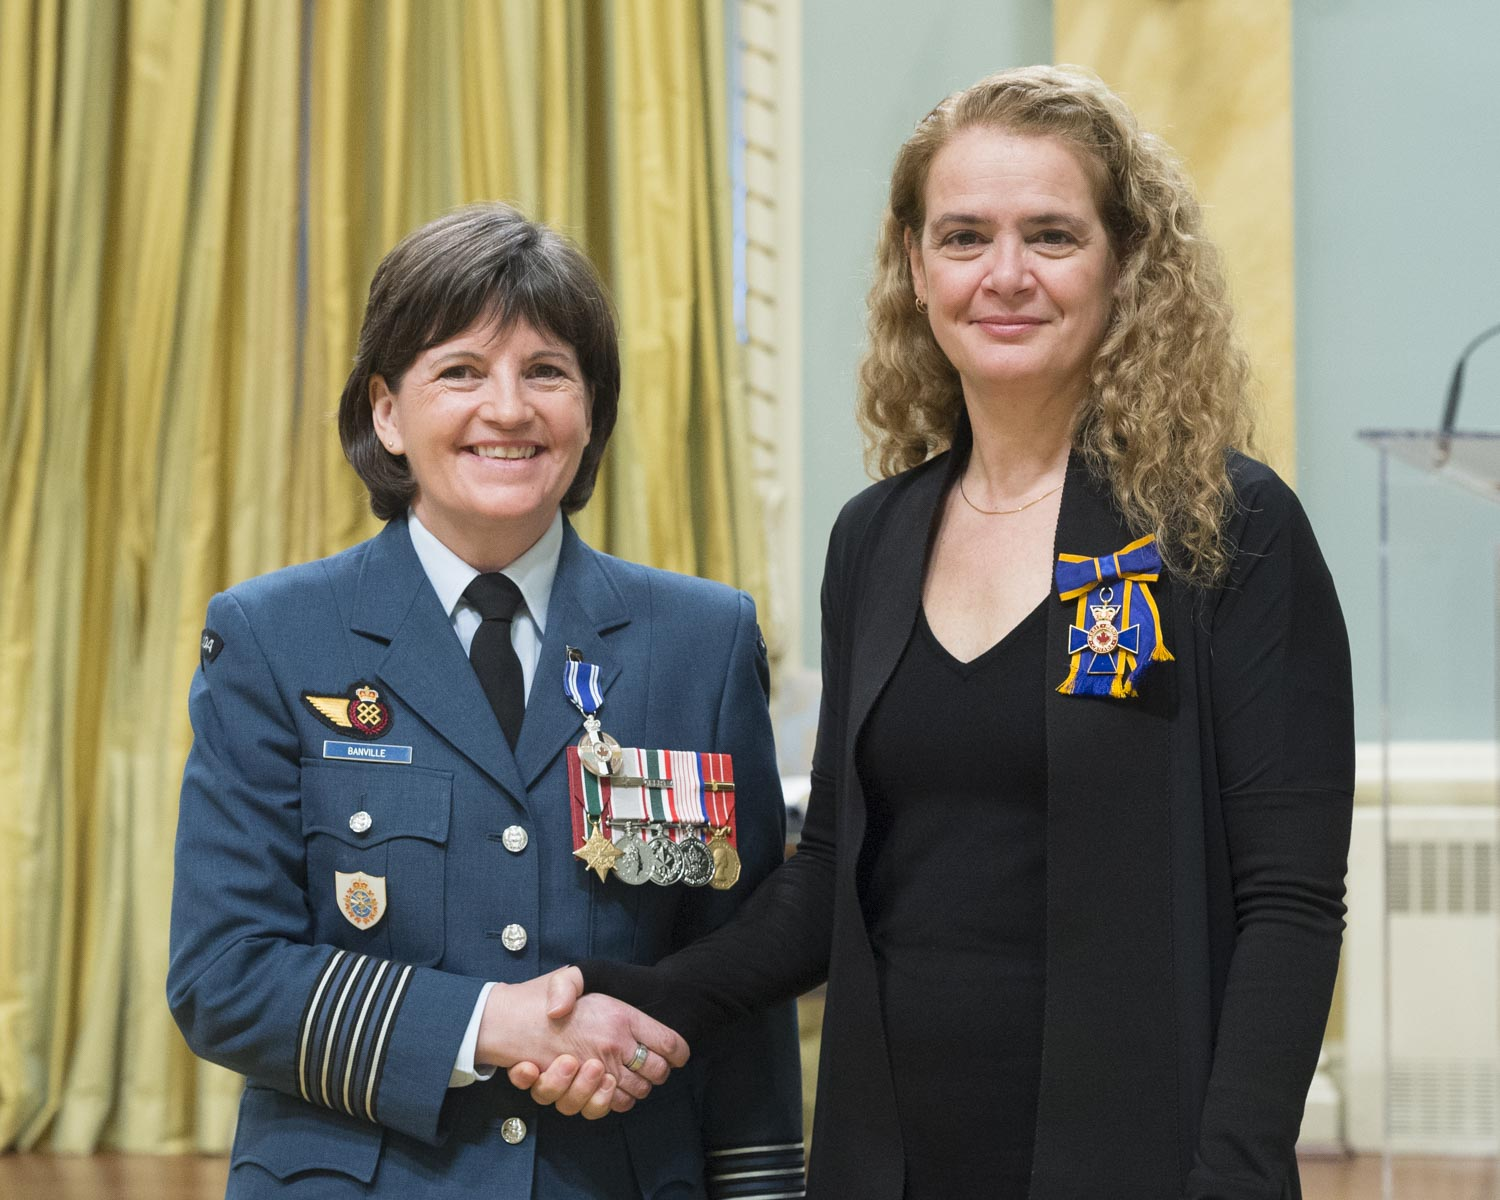 Colonel Angela Marie Banville received a Meritorious Service Medal (Military Division). From July 2016 to July 2017, Colonel Banville was deployed to Jerusalem as the deputy commander of Task Force Jerusalem and the director of Operational Support for the United States Security Coordinator. She led a multinational team that bolstered the capacity of the Palestinian Authority Security Force, enabling it to police the West Bank more effectively and safely. With steadfast leadership and professionalism, Colonel Banville cemented critical strategic alliances and advanced Canada's interests in the Middle East.